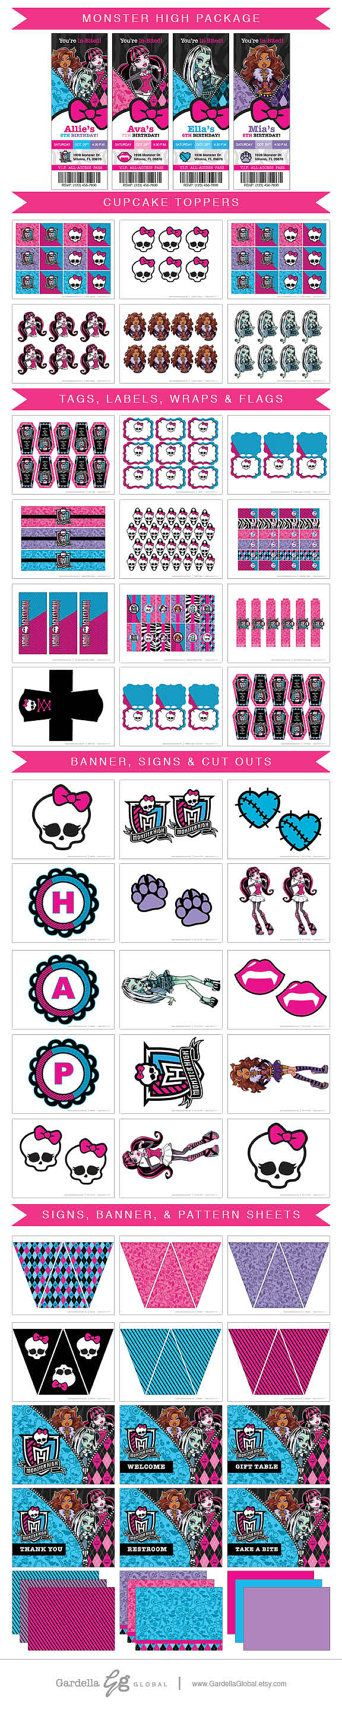 Monster High Invitation Monster High invite by GardellaGlobal